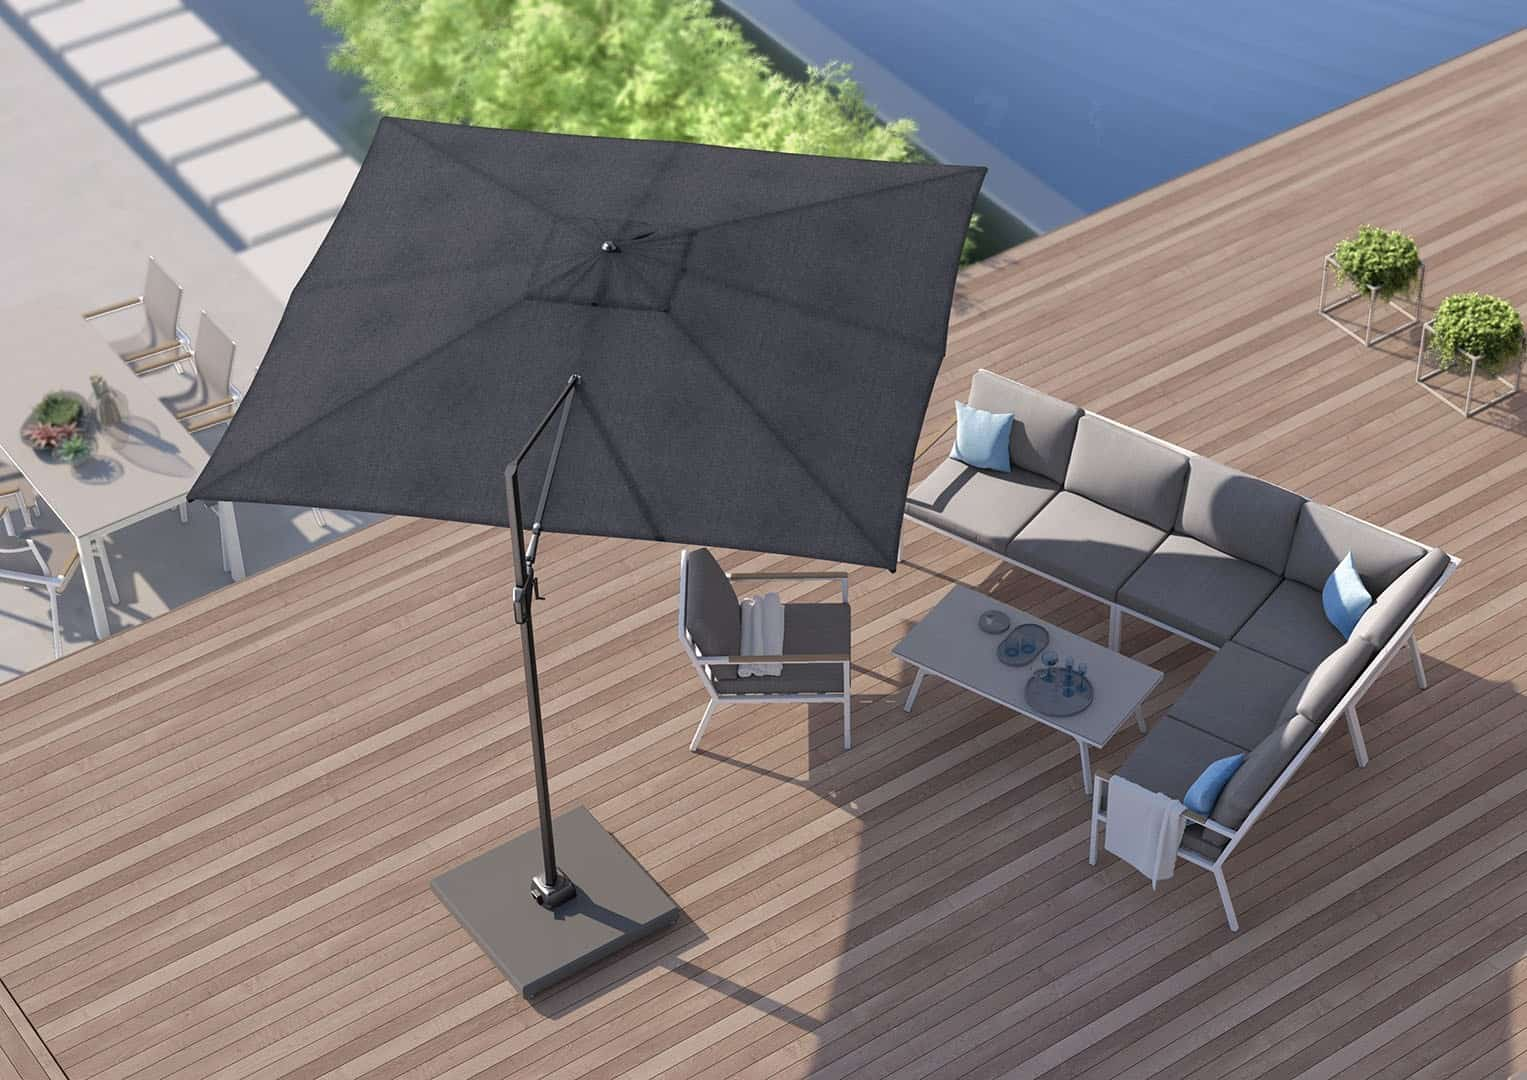 Parasol ogrodowy ​​​​​​Challenger T² 3m x 3m